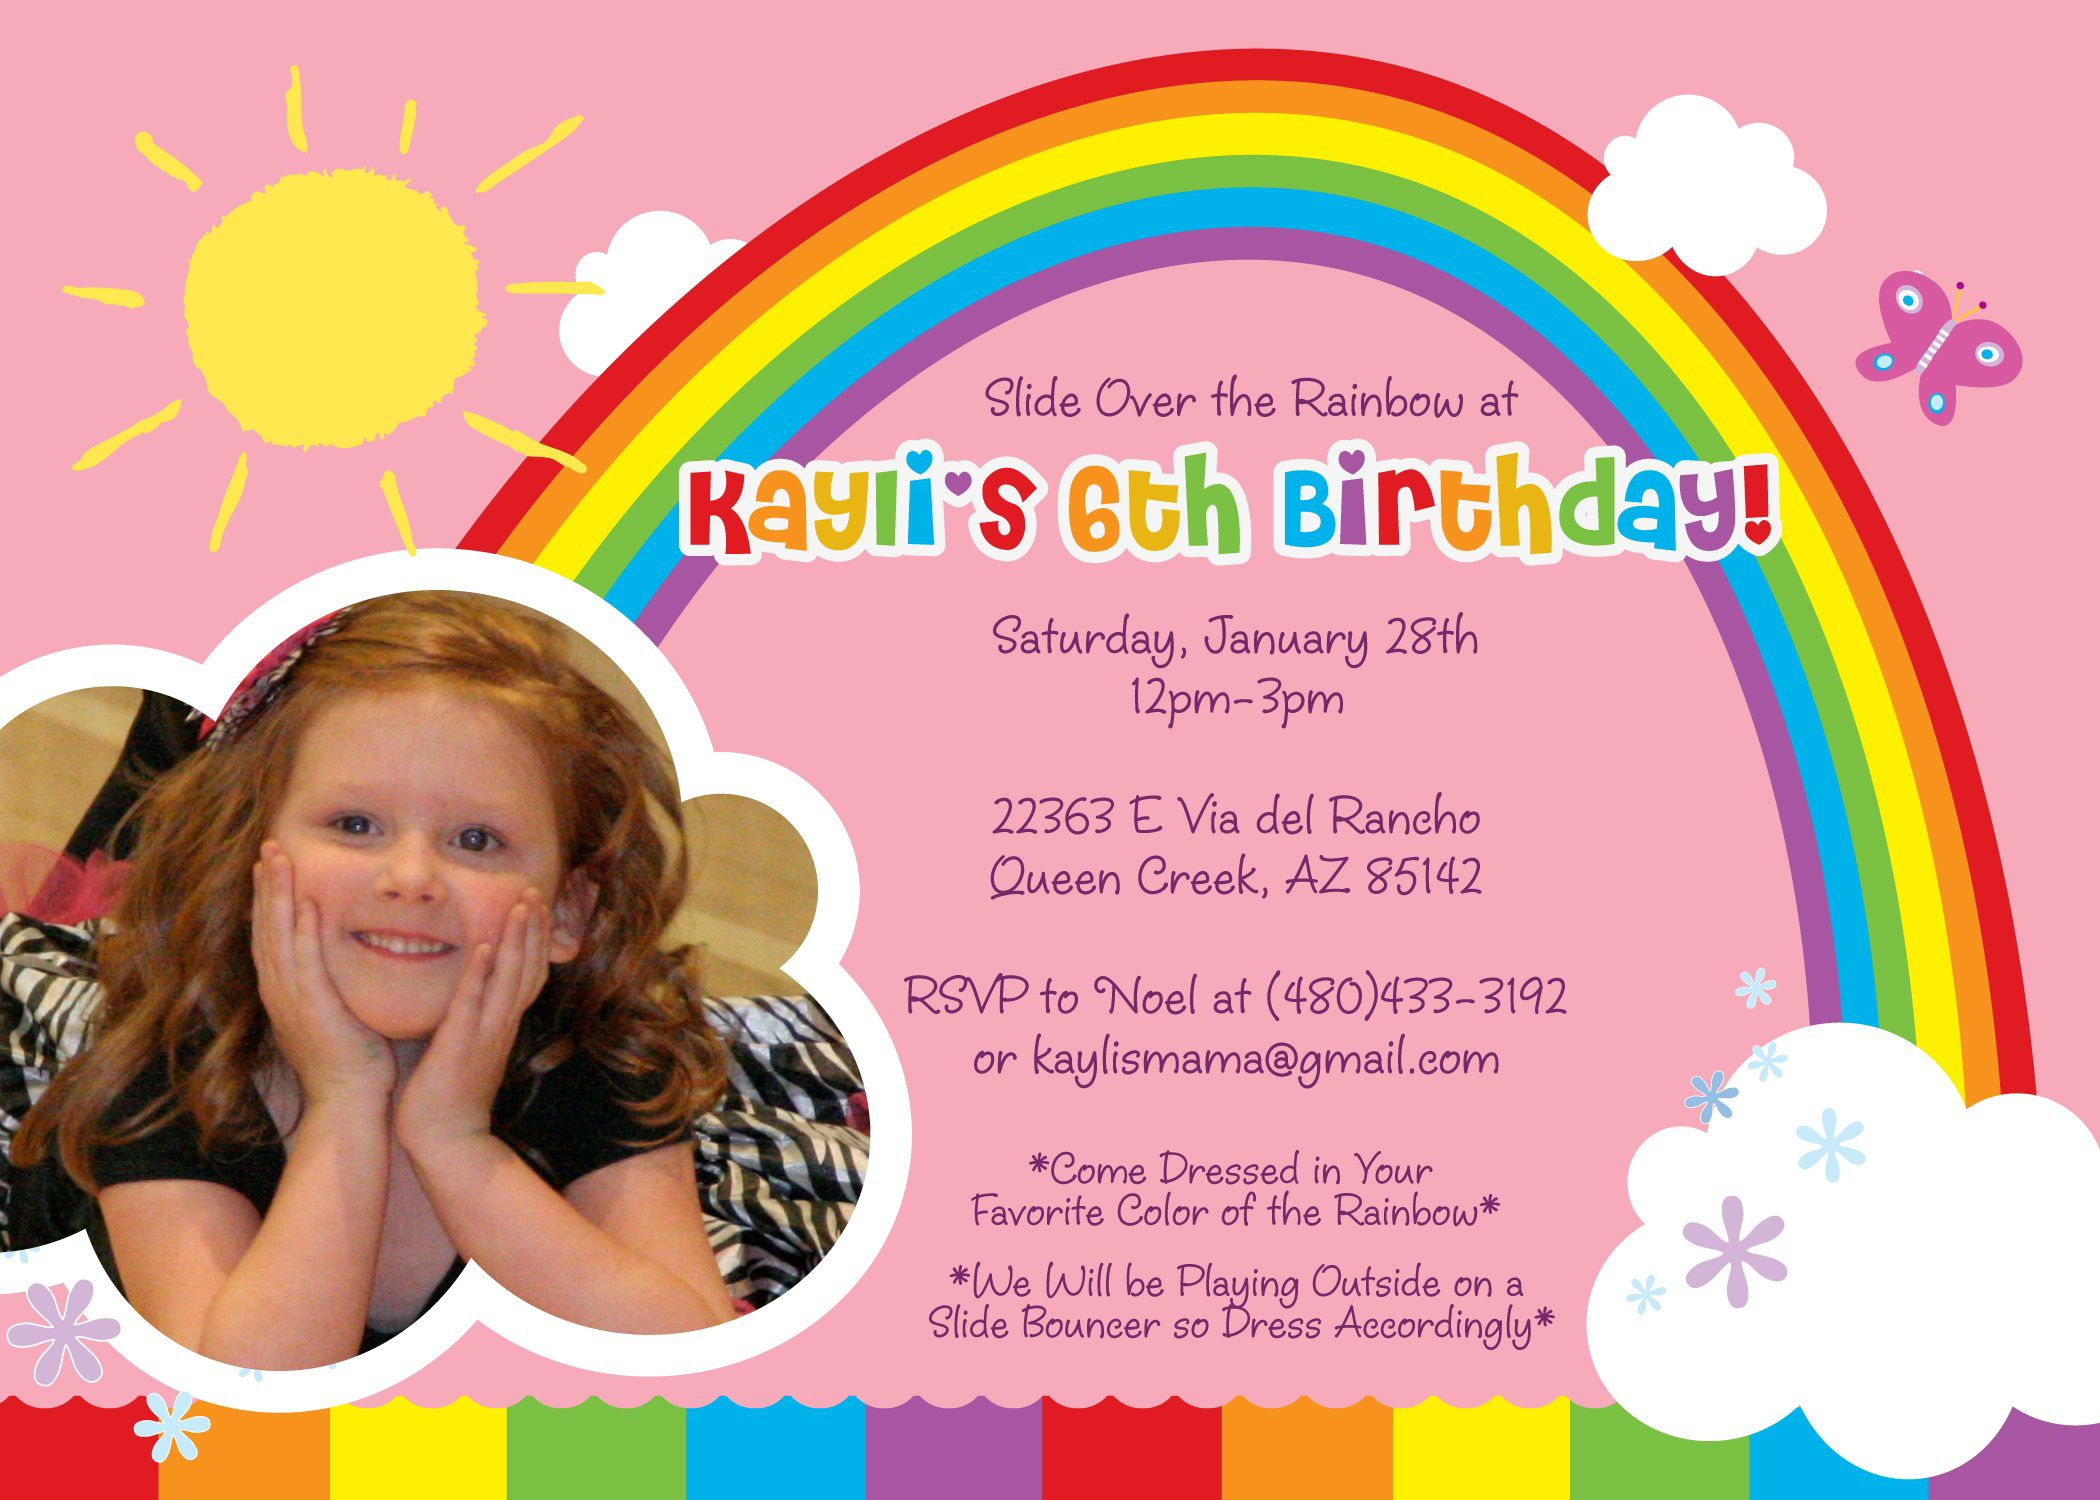 Birthday Party Invitation Template Quotes – Free Printable Party Invitations for Kids Birthday Parties